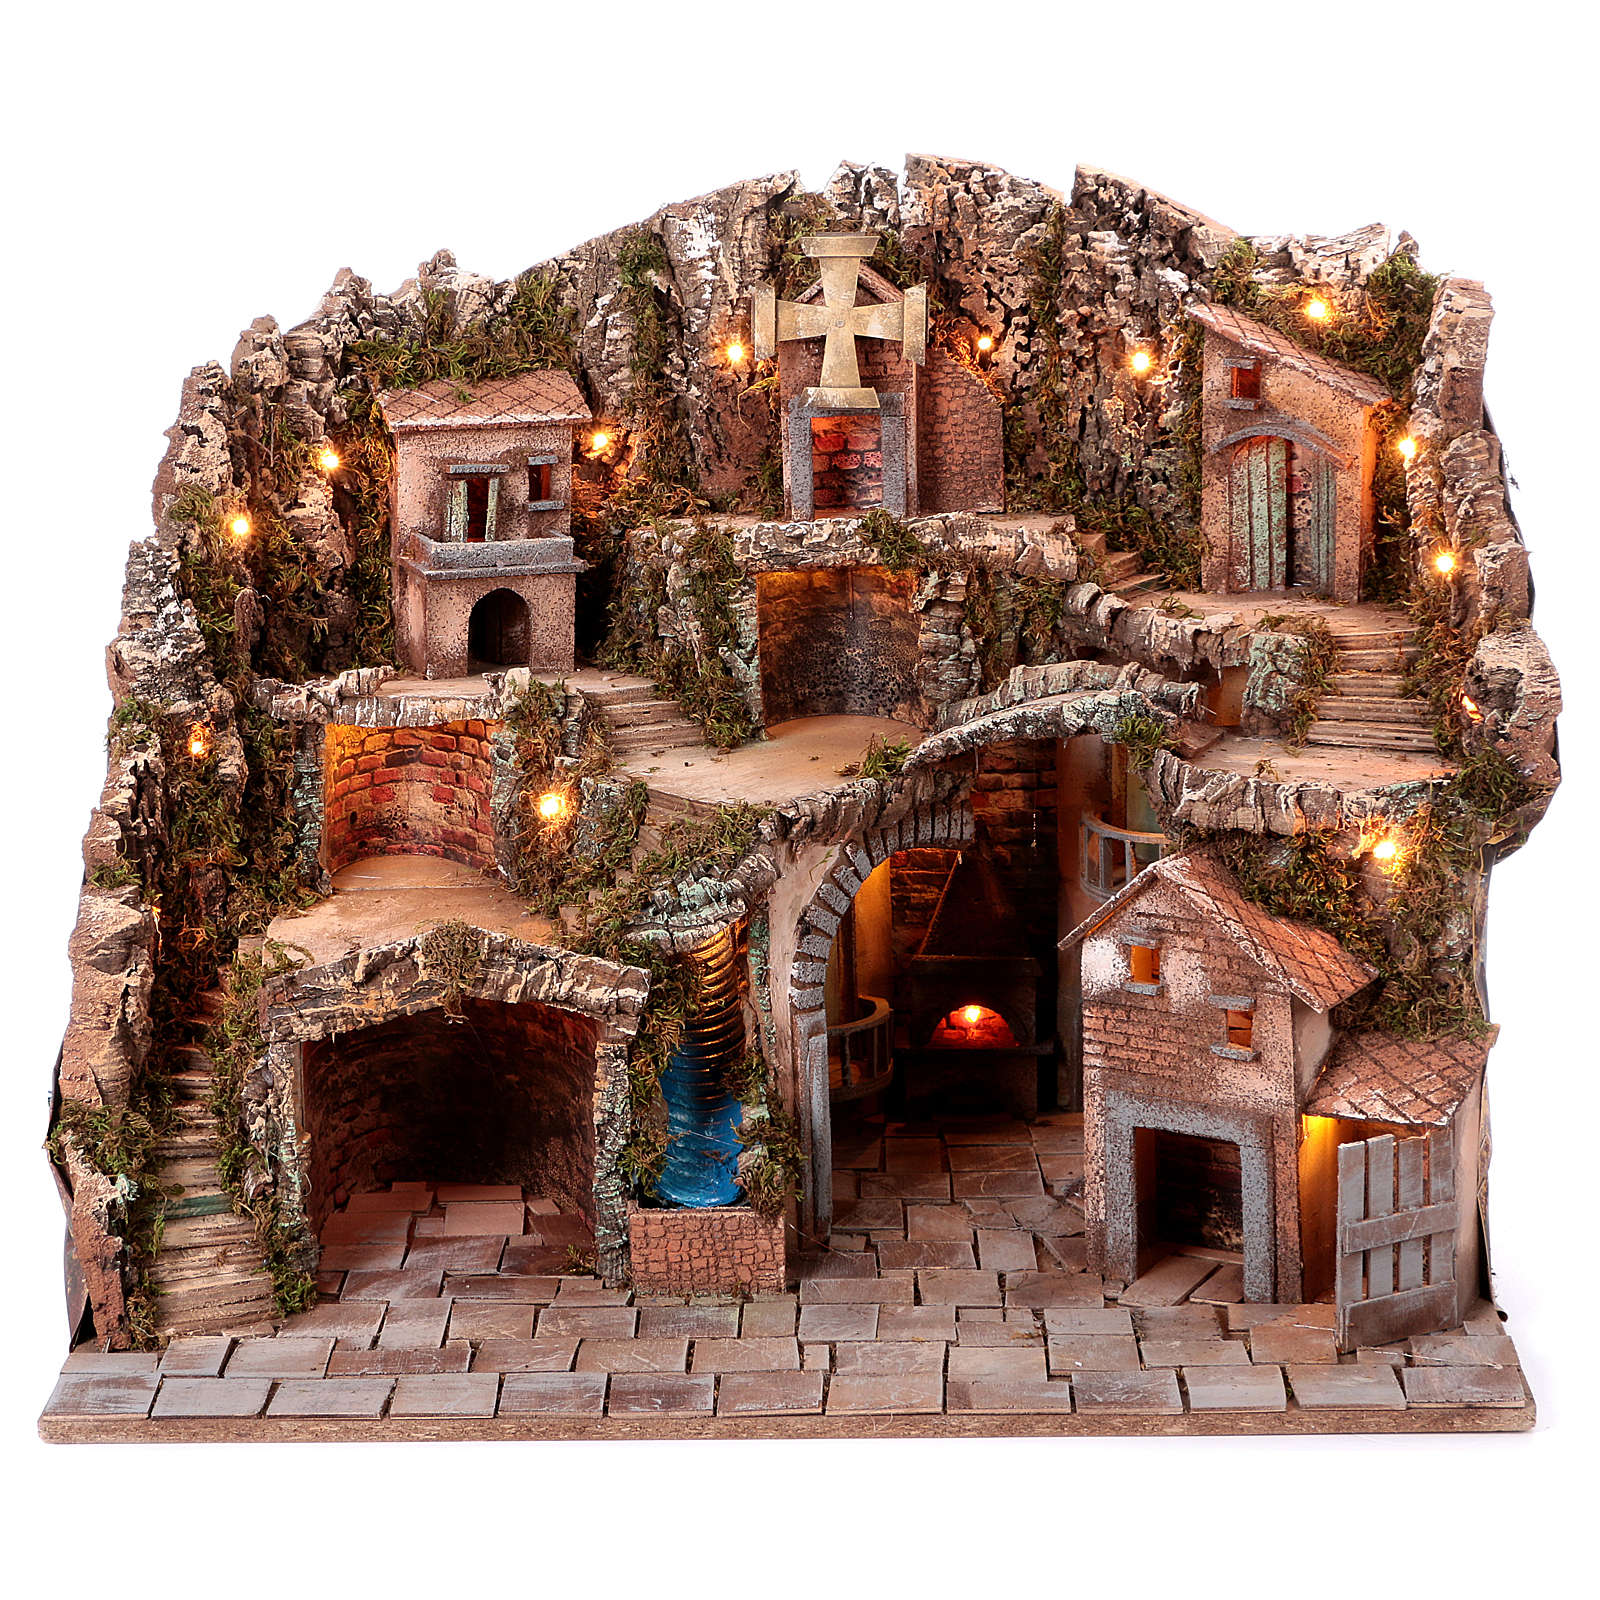 Neapolitan Nativity scene village setting 70x85x60 cm 4